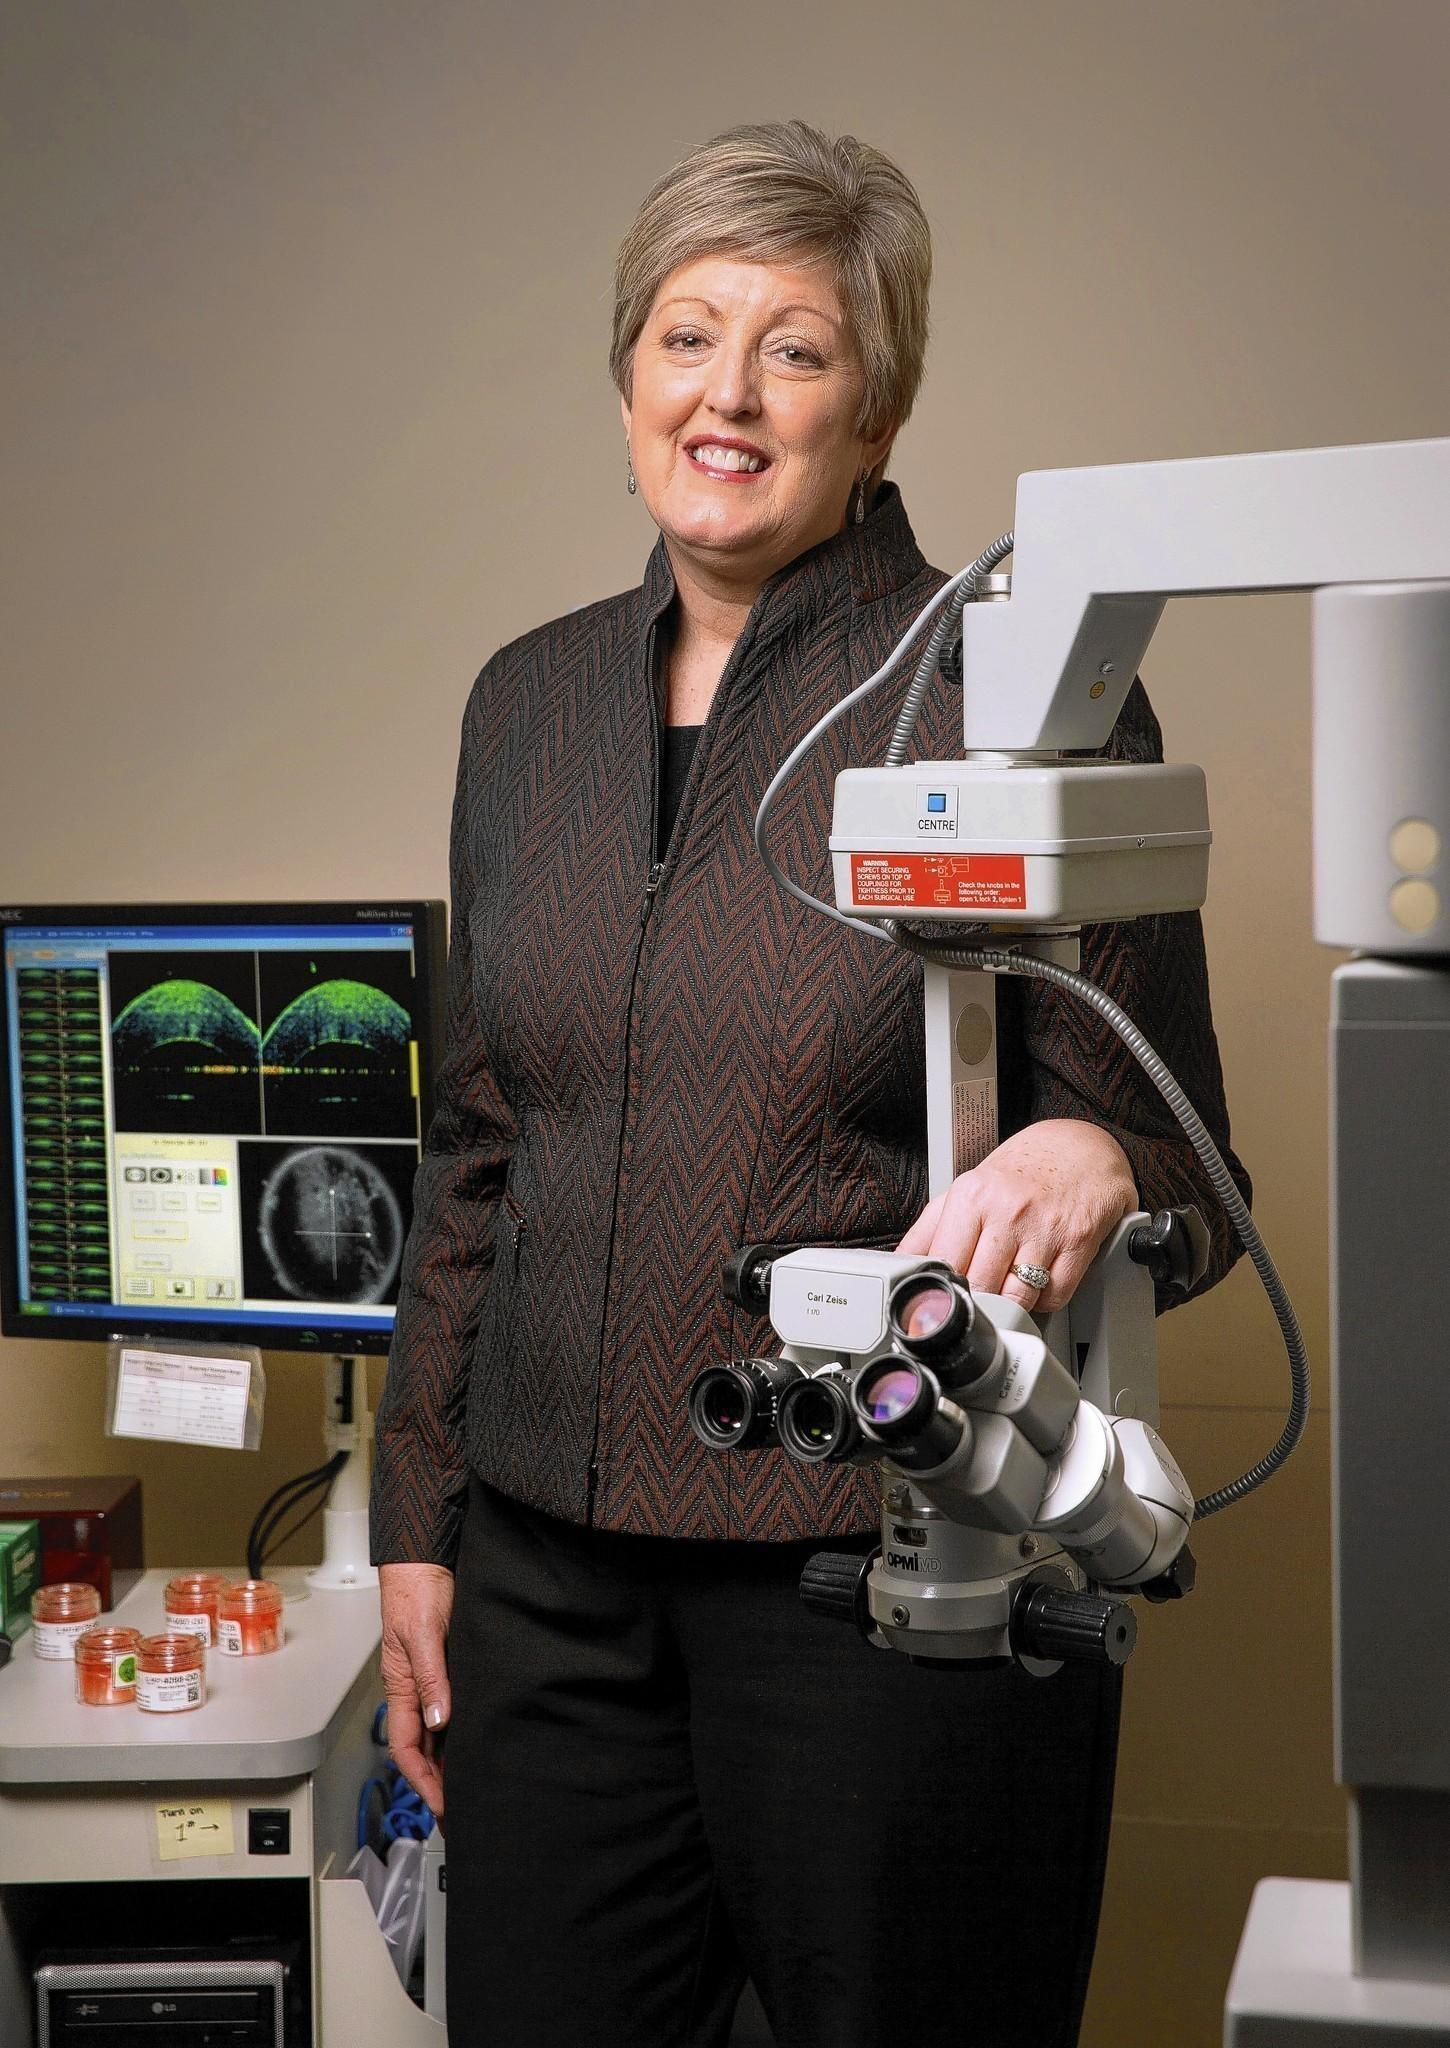 Diane Hollingsworth, executive director of the Illinois Eye-Bank, poses in the office lab, Monday, March 10, 2014.